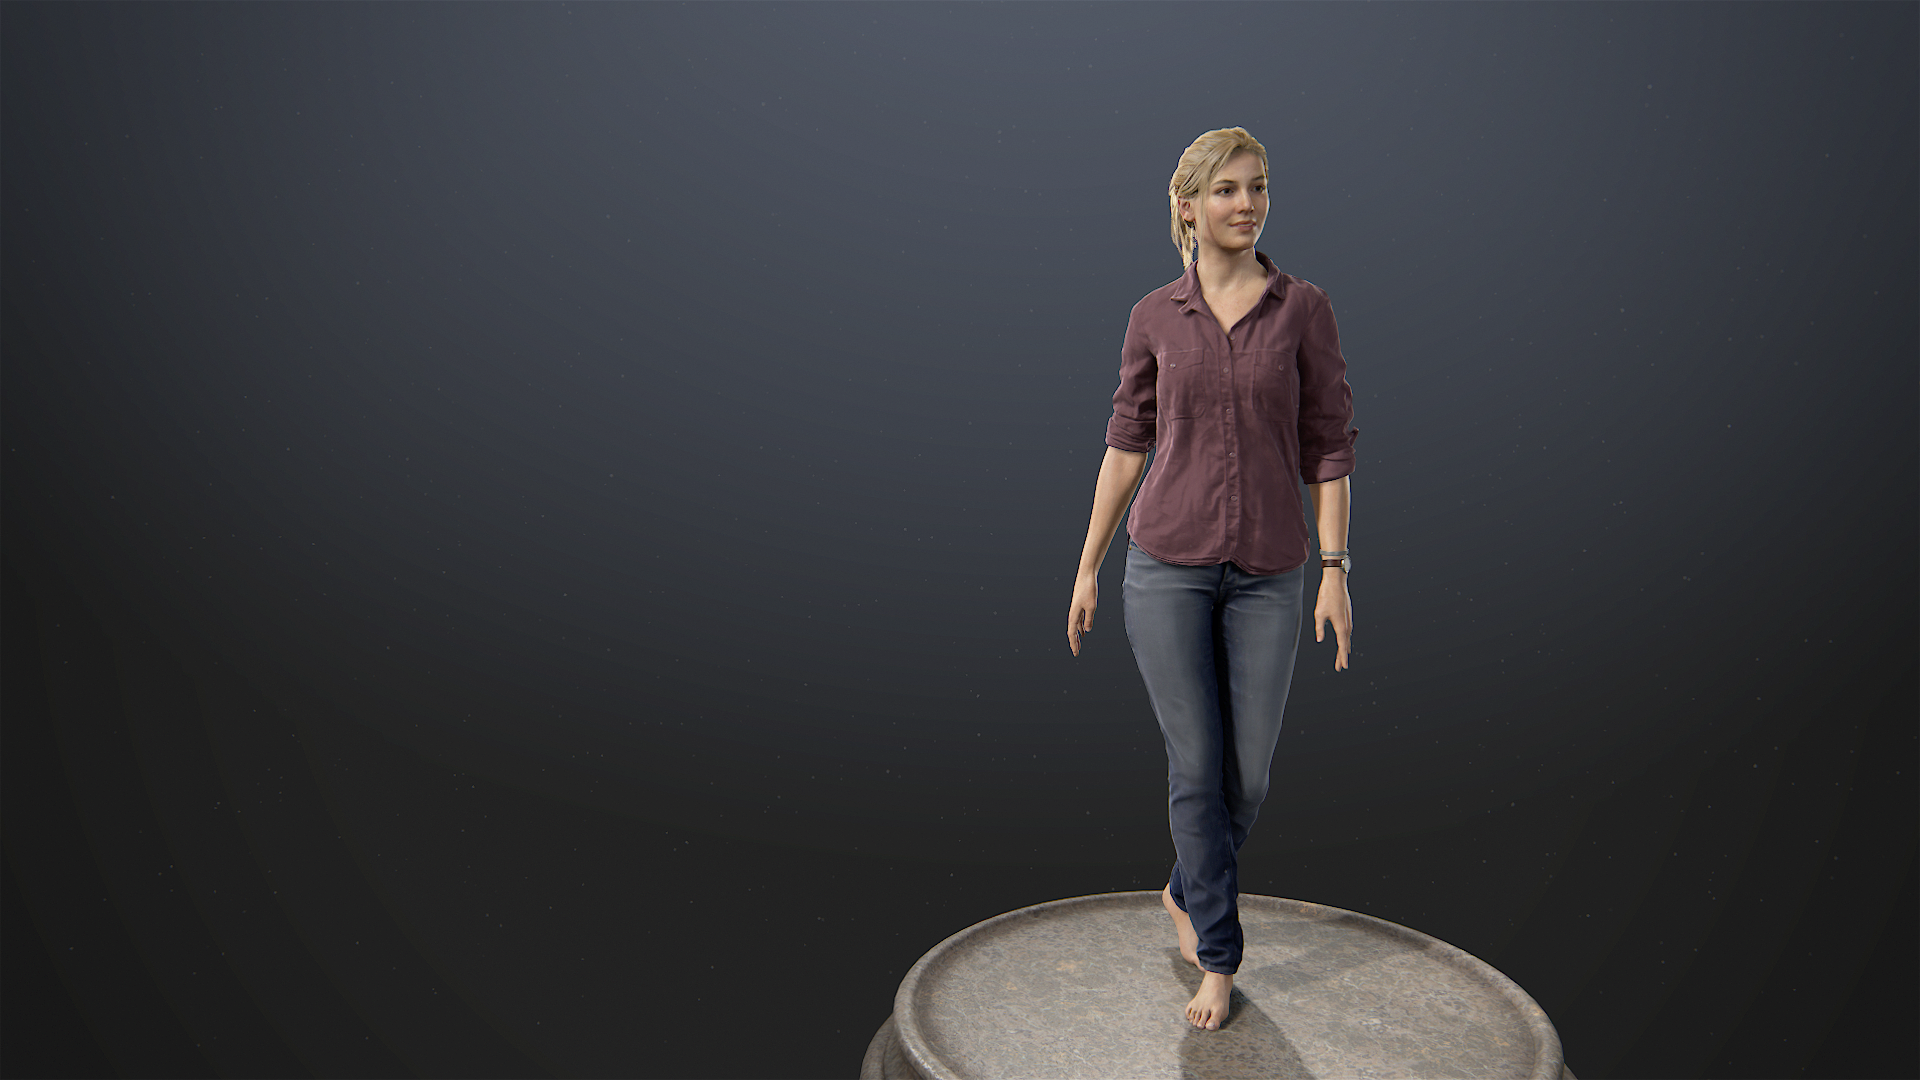 Uncharted 4 A Thiefs End Elena Fisher Barefoot Elena Video Games PlayStation 3 PlayStation 4 Playsta 1920x1080